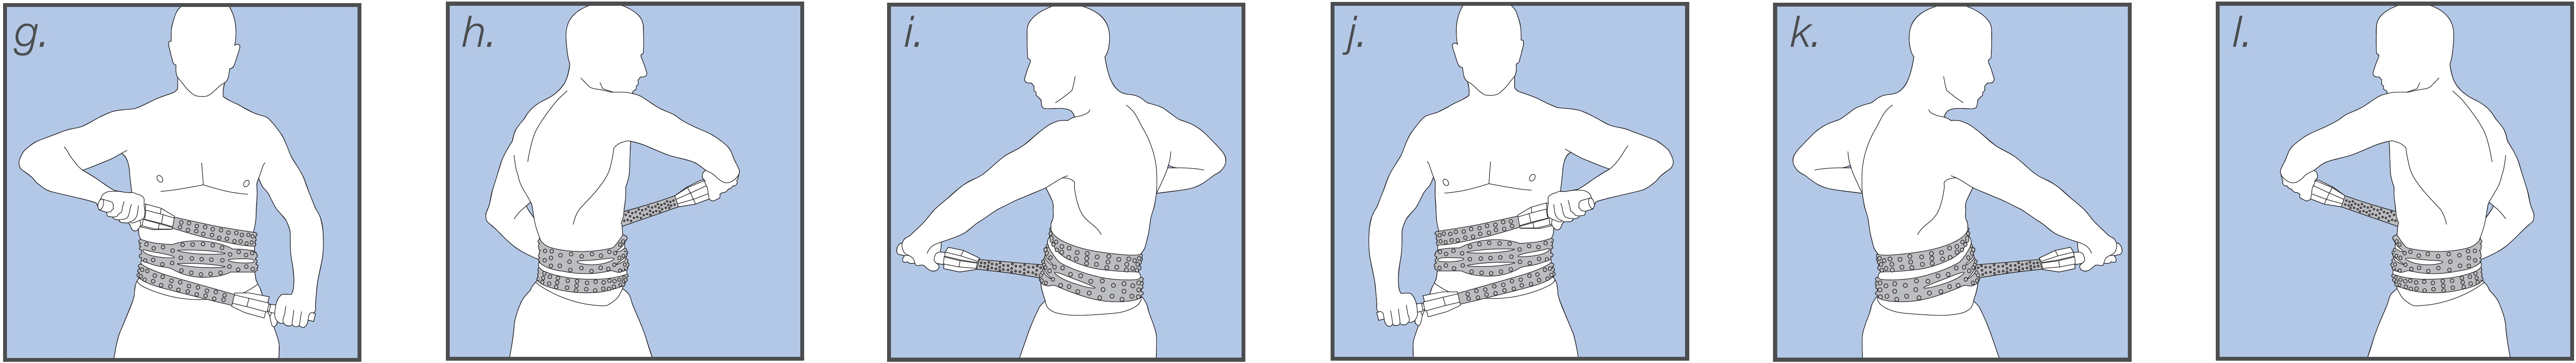 XGrip Traine body shaper, how to perform exercise two: The Cross Pull